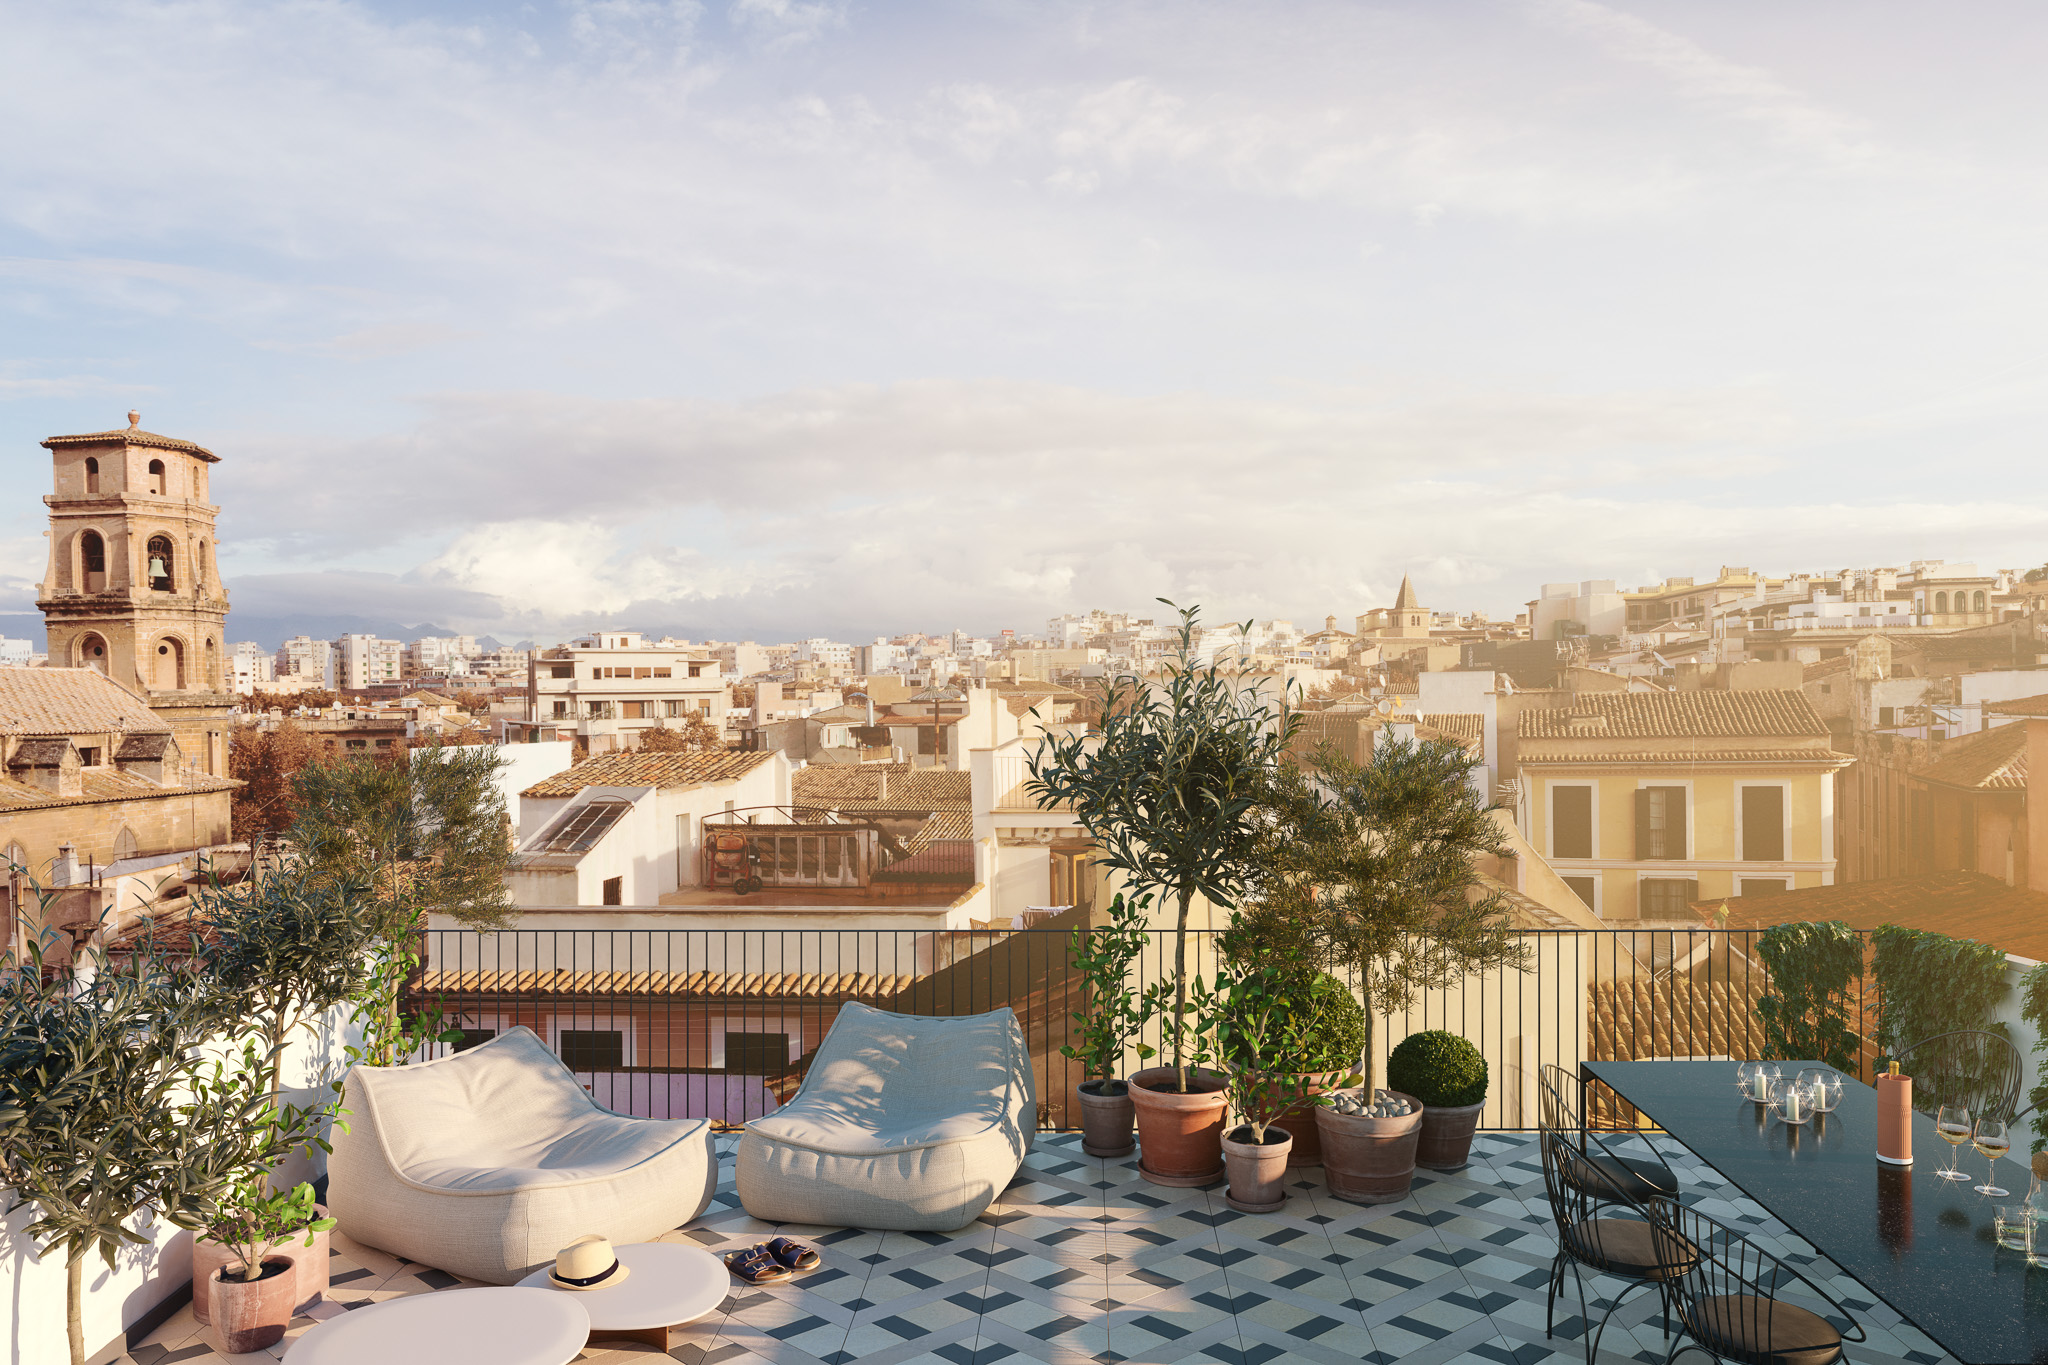 Your secret new apartment in Old Town Palma